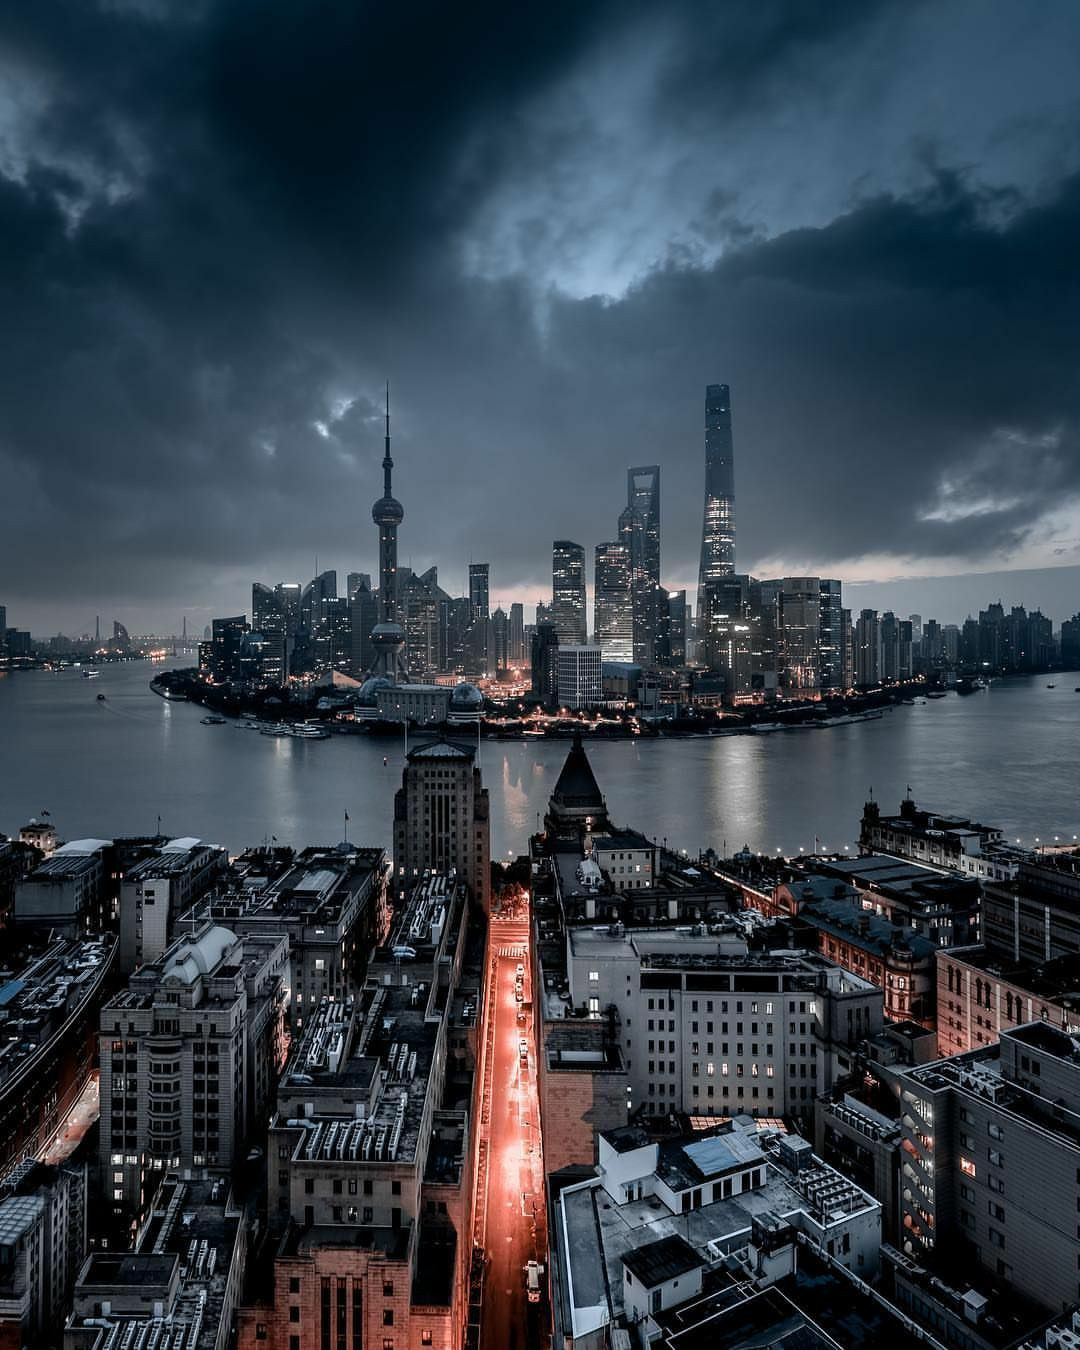 Shanghai China City Cities Buildings Photography City Landscape Urban Photography City Aesthetic